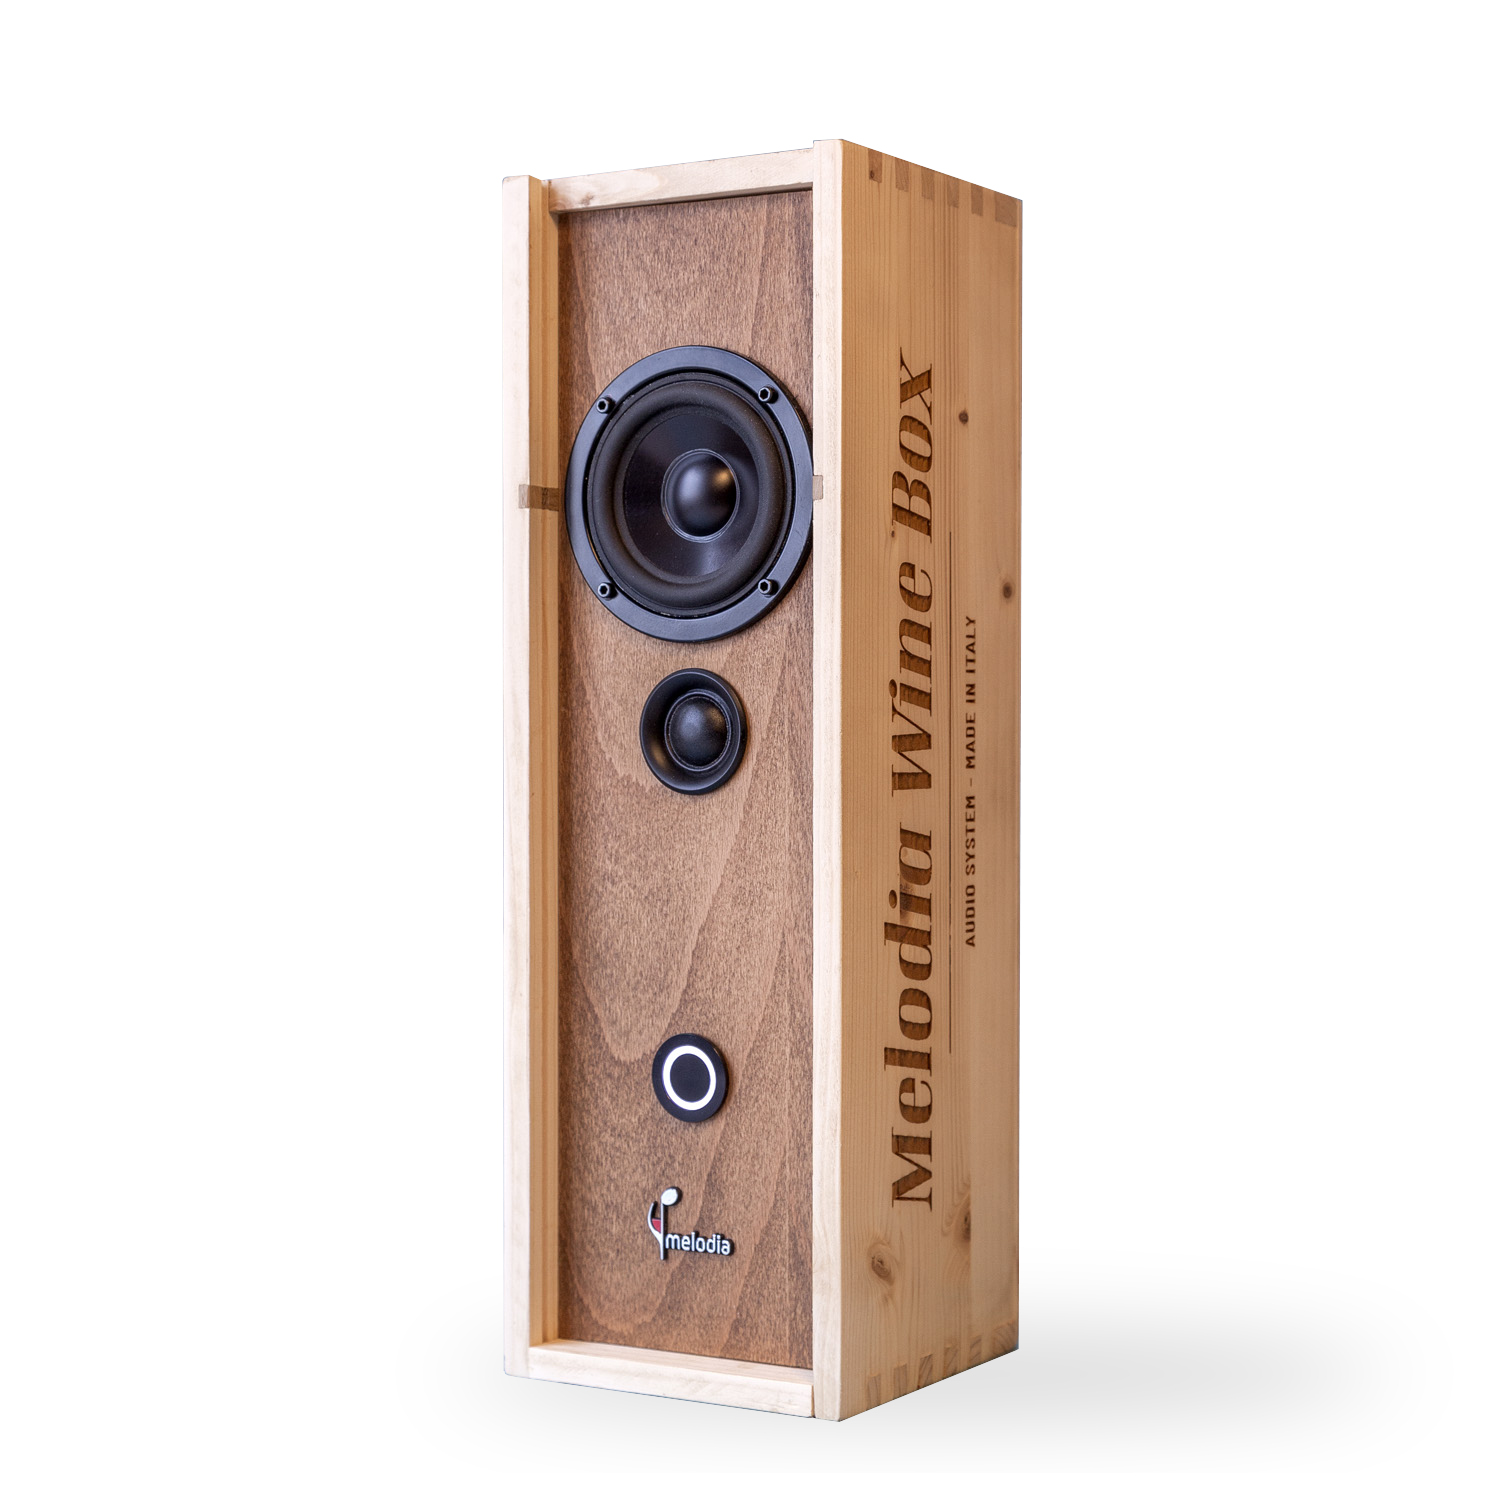 Melodia Wine Box Audio System